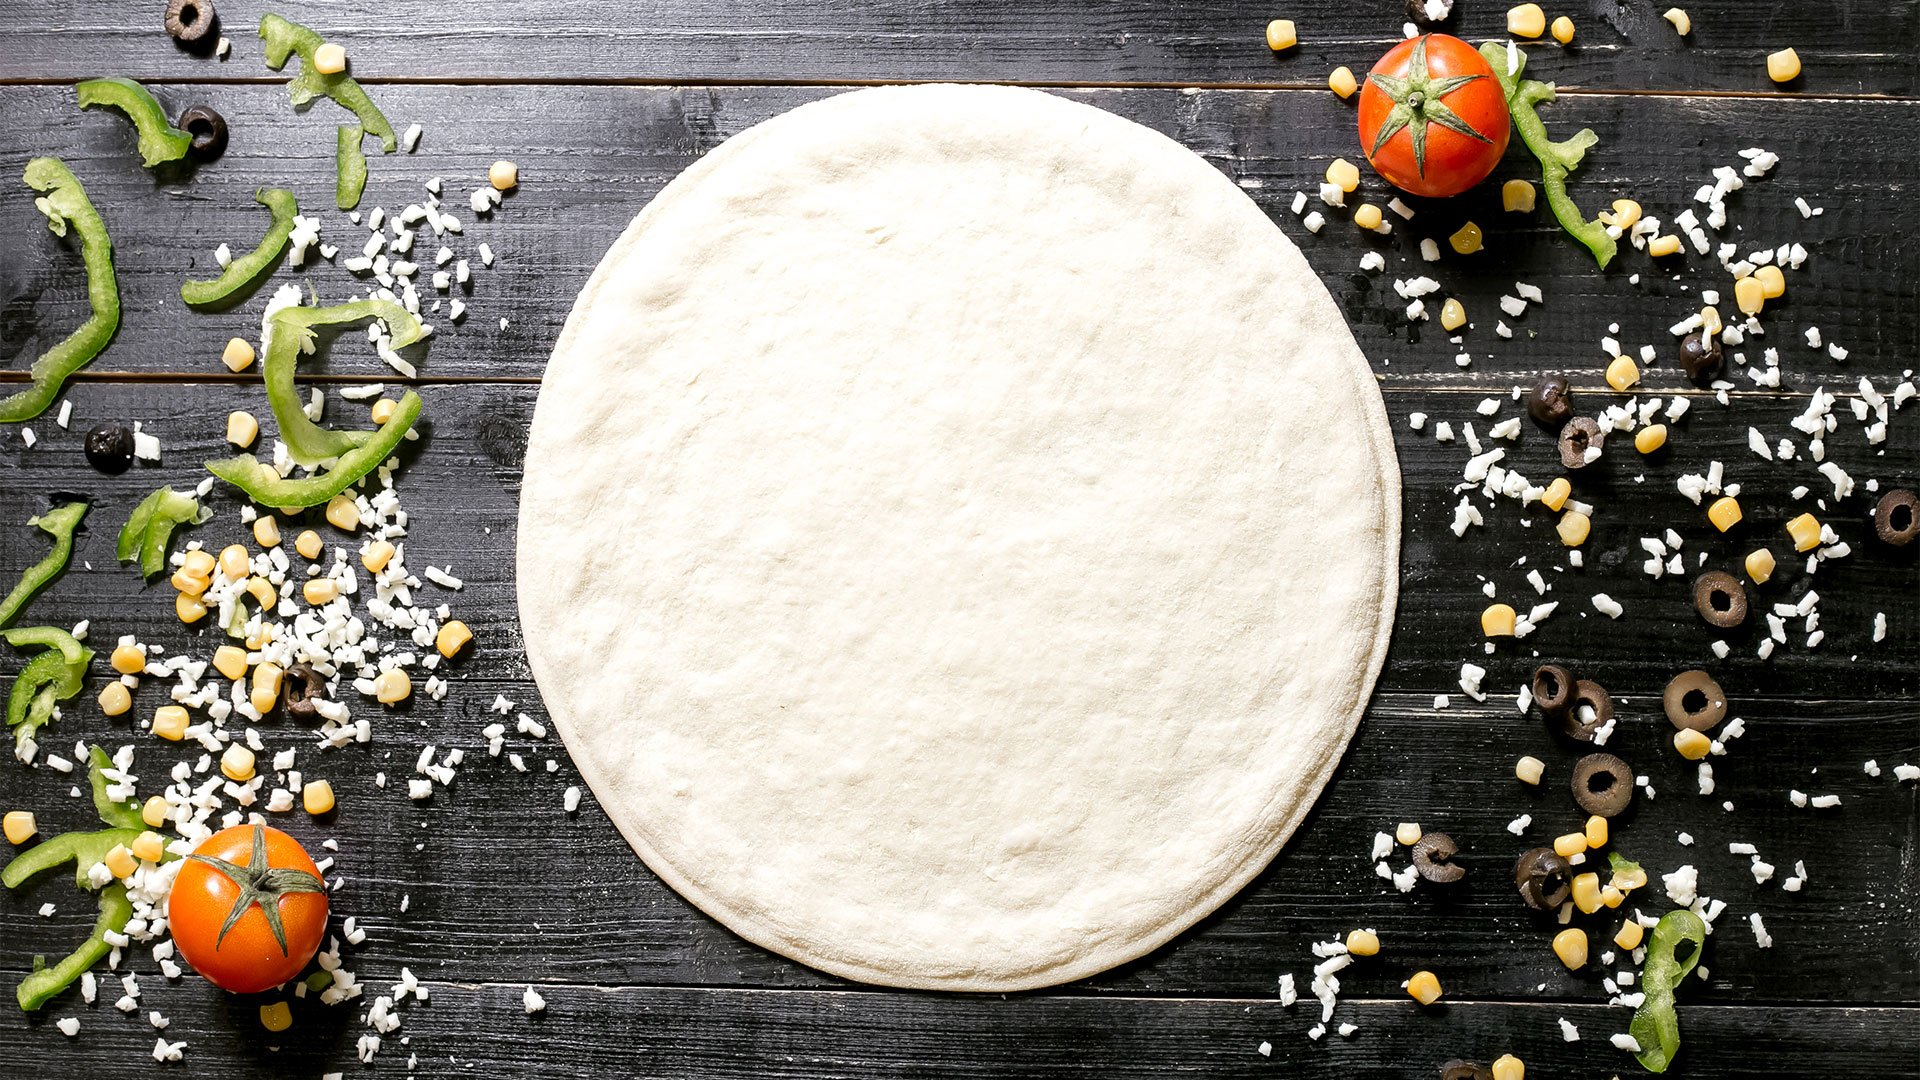 How to Make easy pizza dough